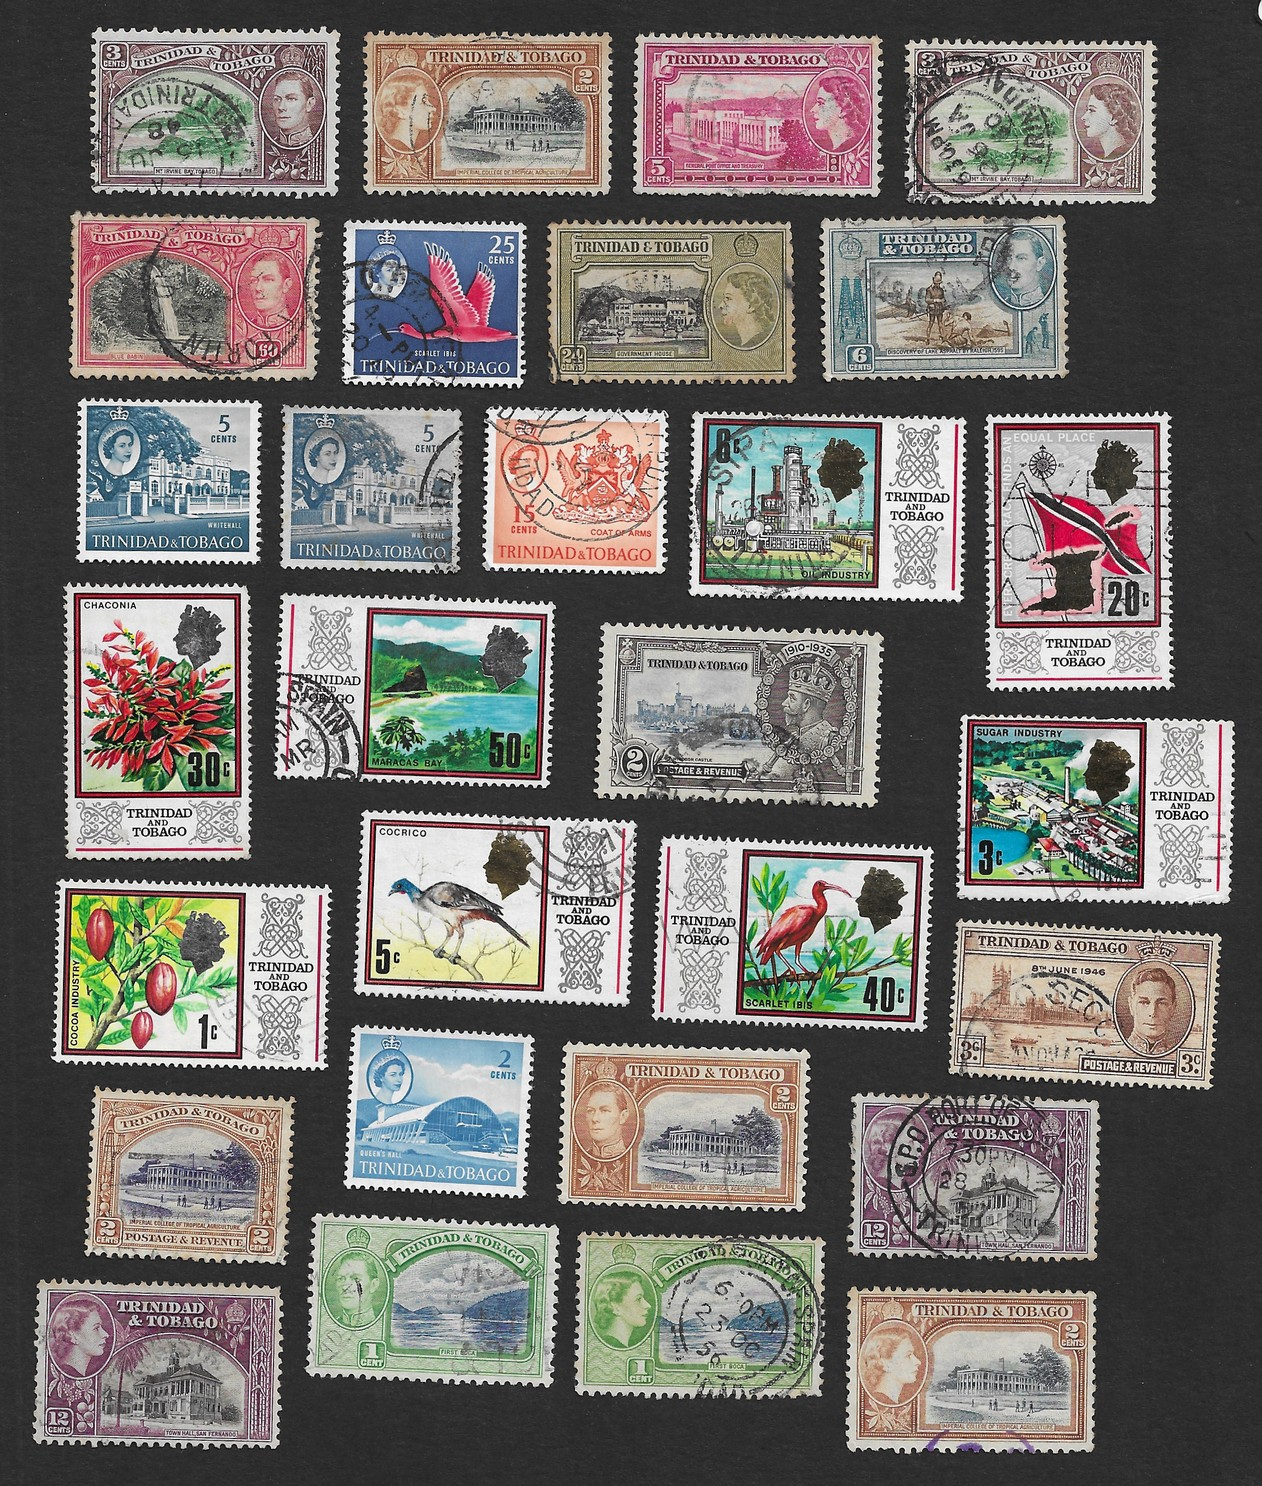 Trinidad & Tobago 1935 mint & used collection – 29 stamps